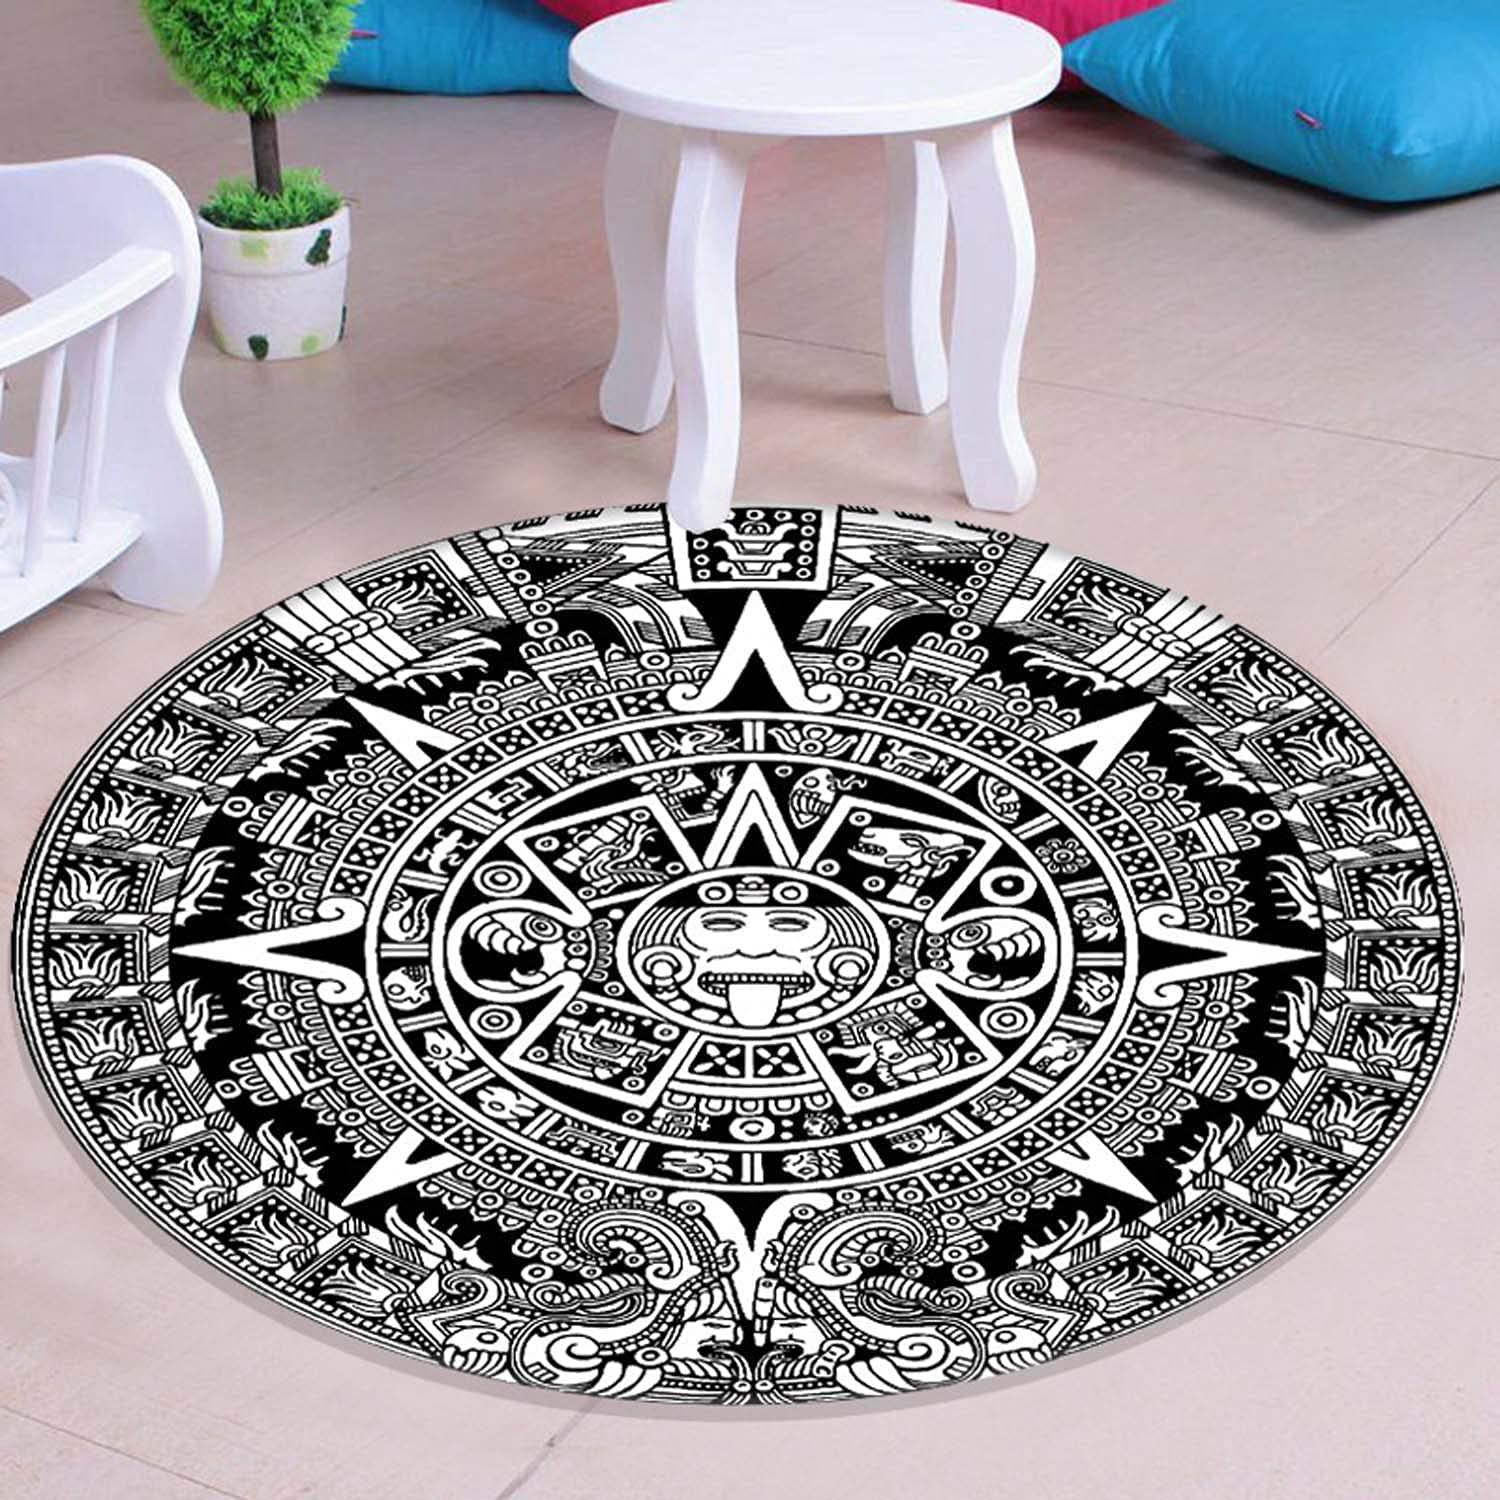 Special price Round Mat Thick 63 x Inch Anti Floor Outlet ☆ Free Shipping Hardwood Cha Gaming Slip